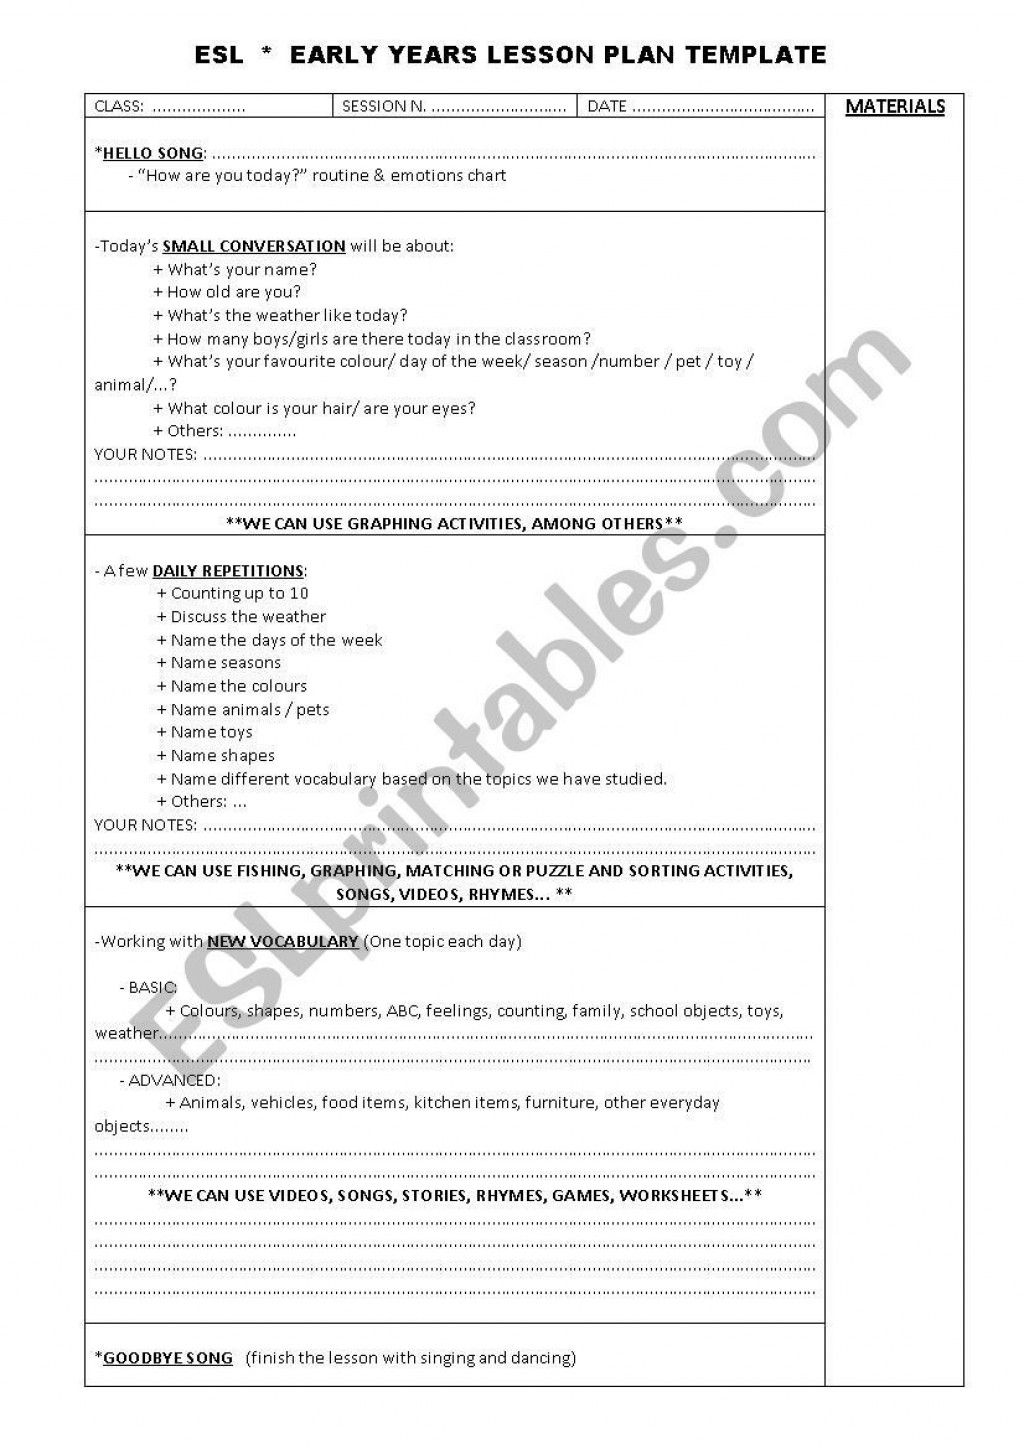 001 Wonderful One Day Lesson Plan Template Inspiration  Example FormatLarge